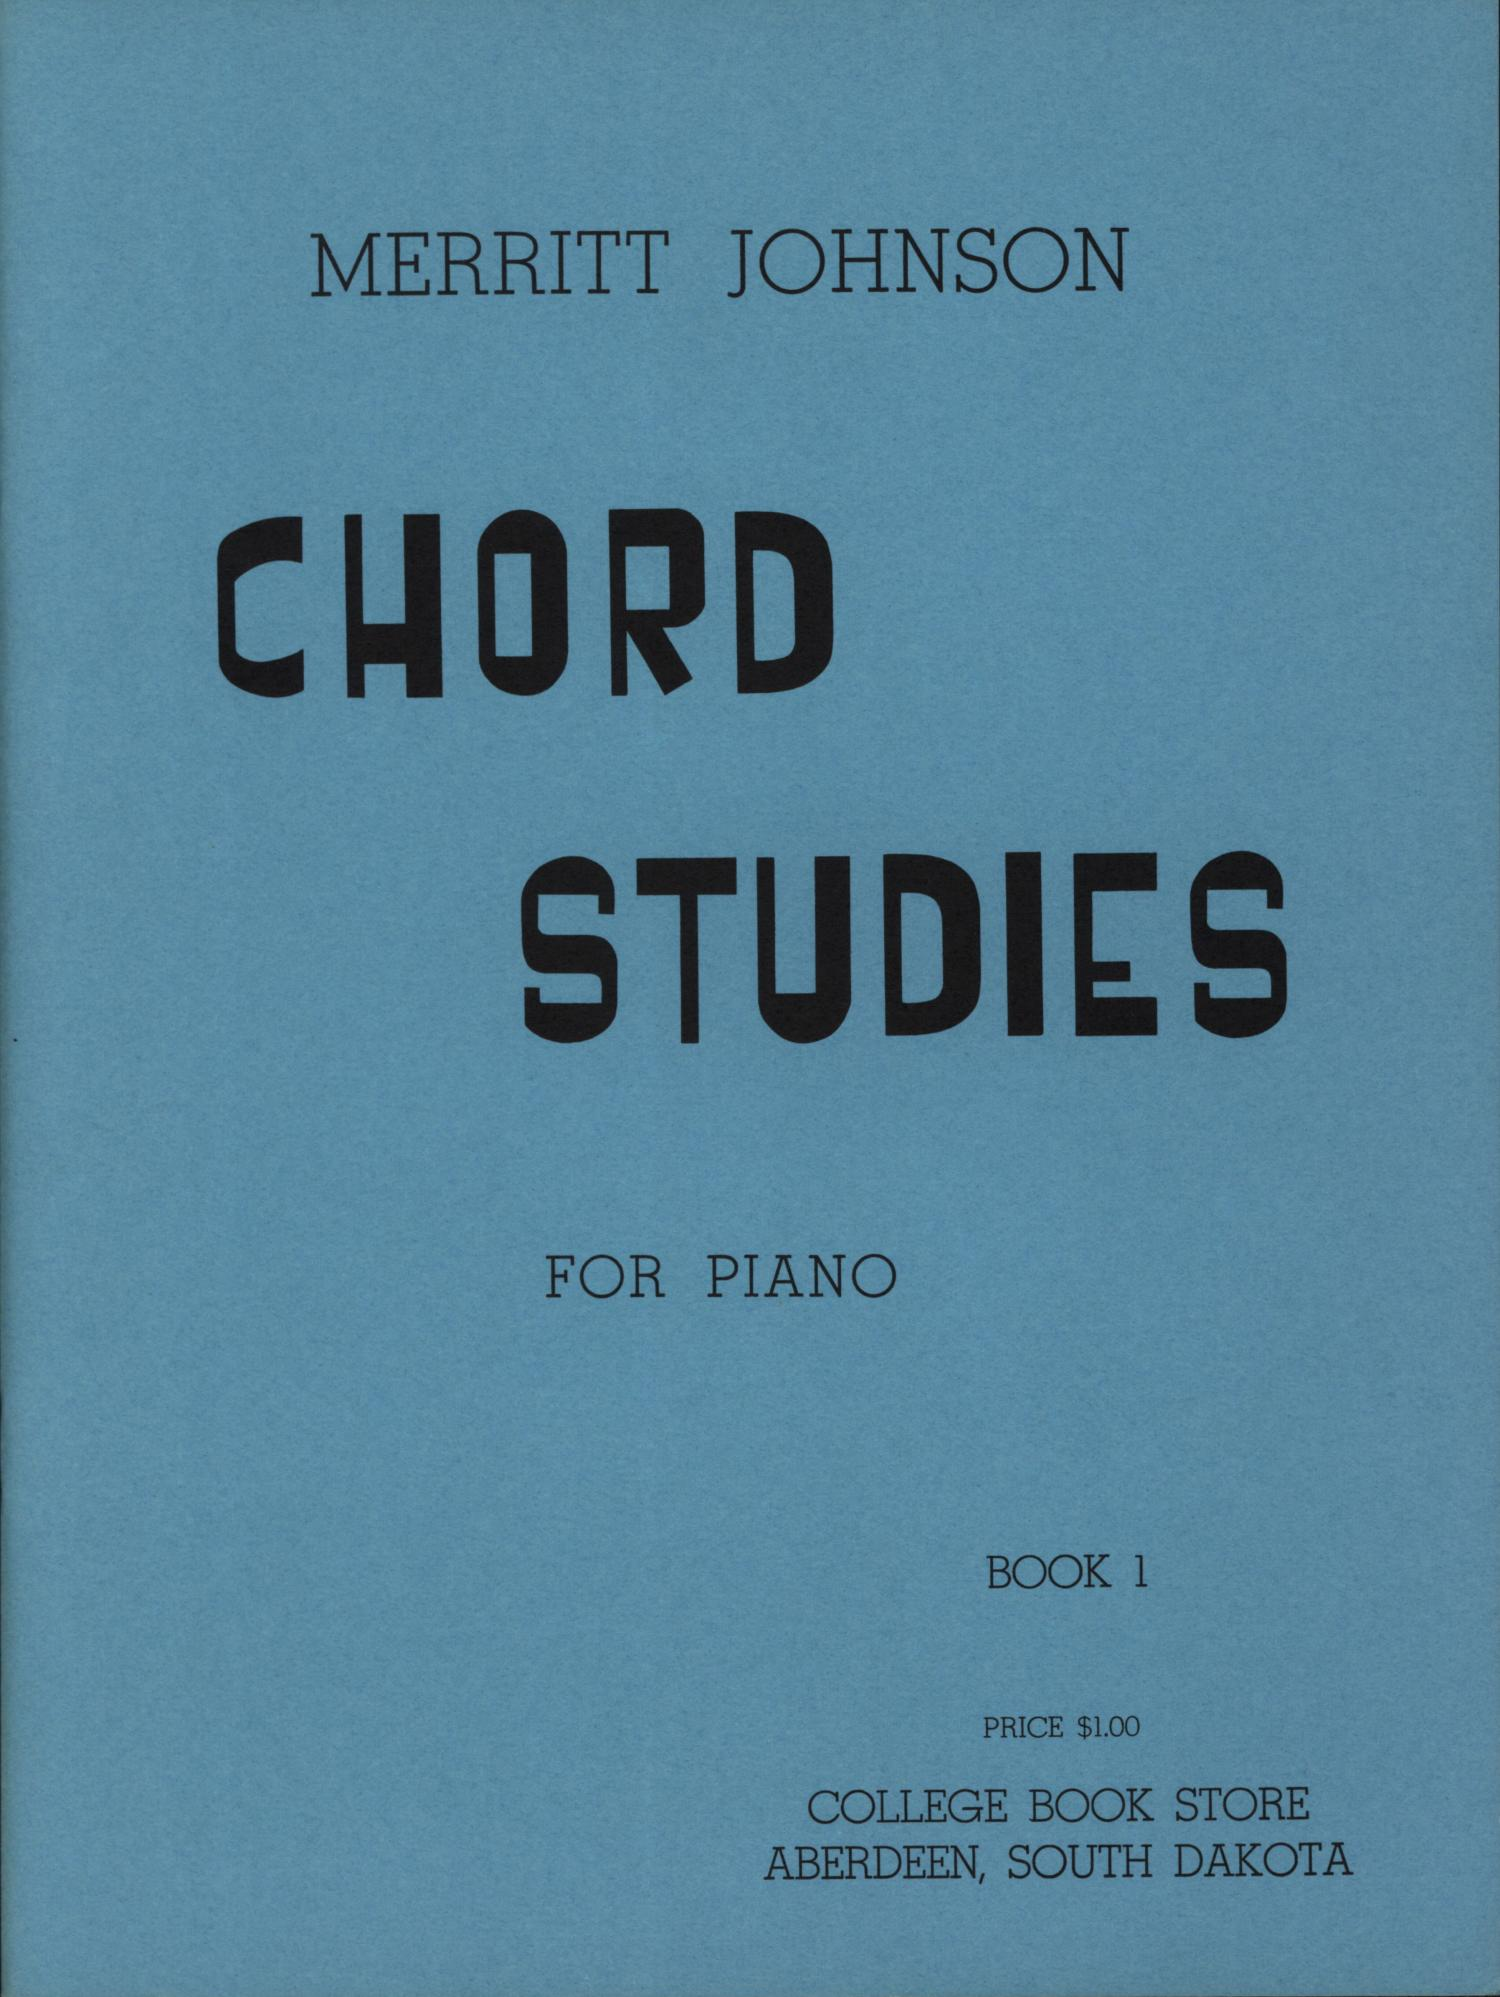 Chord studies for piano book 1 digital library hexwebz Images